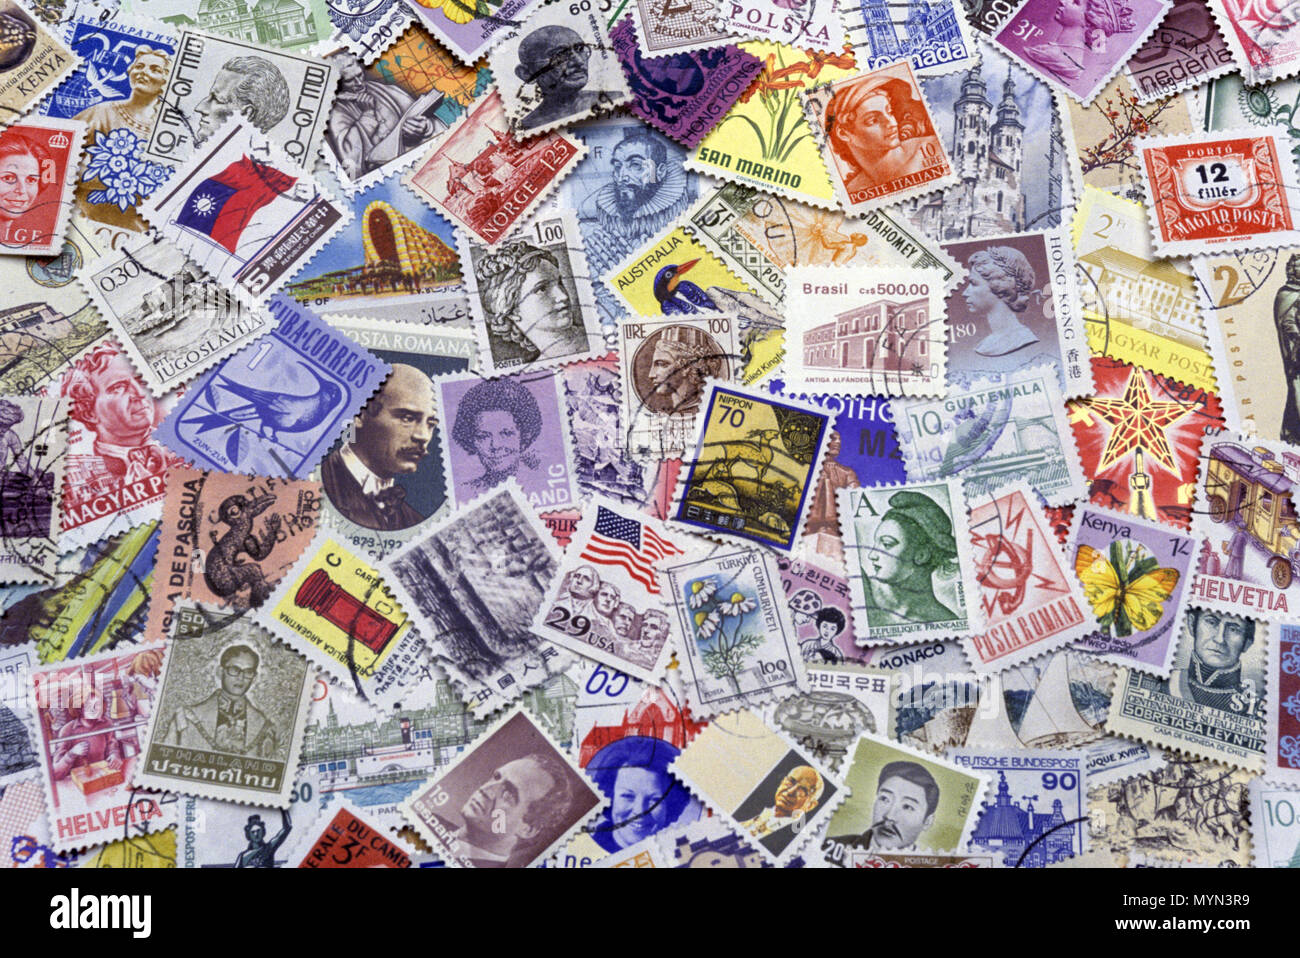 1992 HISTORICAL NATIONAL POSTAGE STAMPS - Stock Image